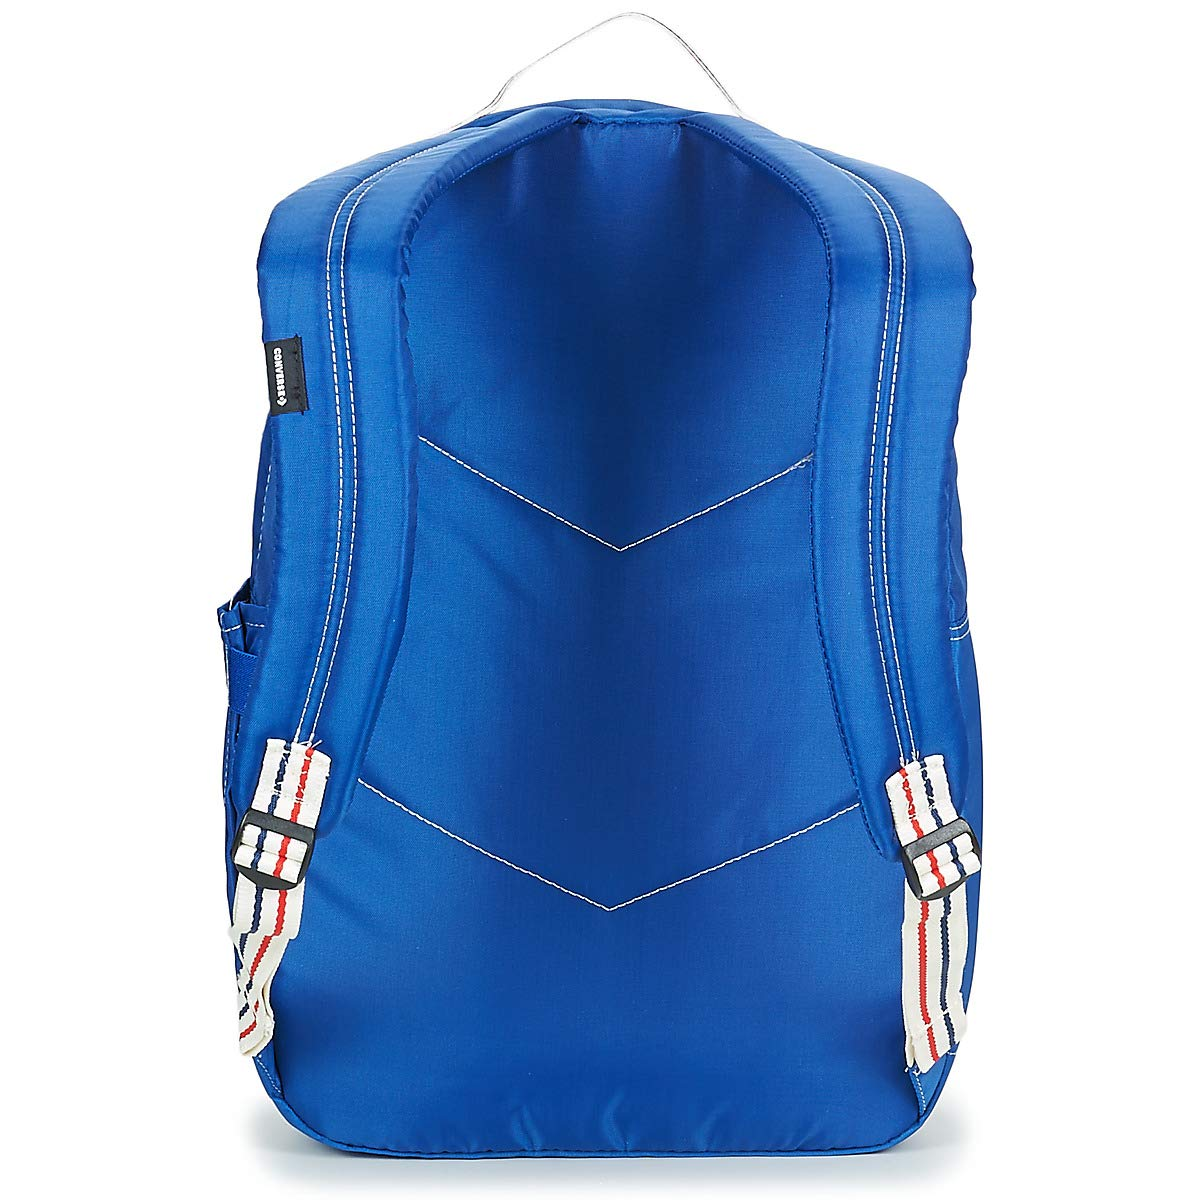 73ce74a9e7 Converse Courtside Go City Sac à dos 44 cm compartiment Laptop: Amazon.fr:  Chaussures et Sacs